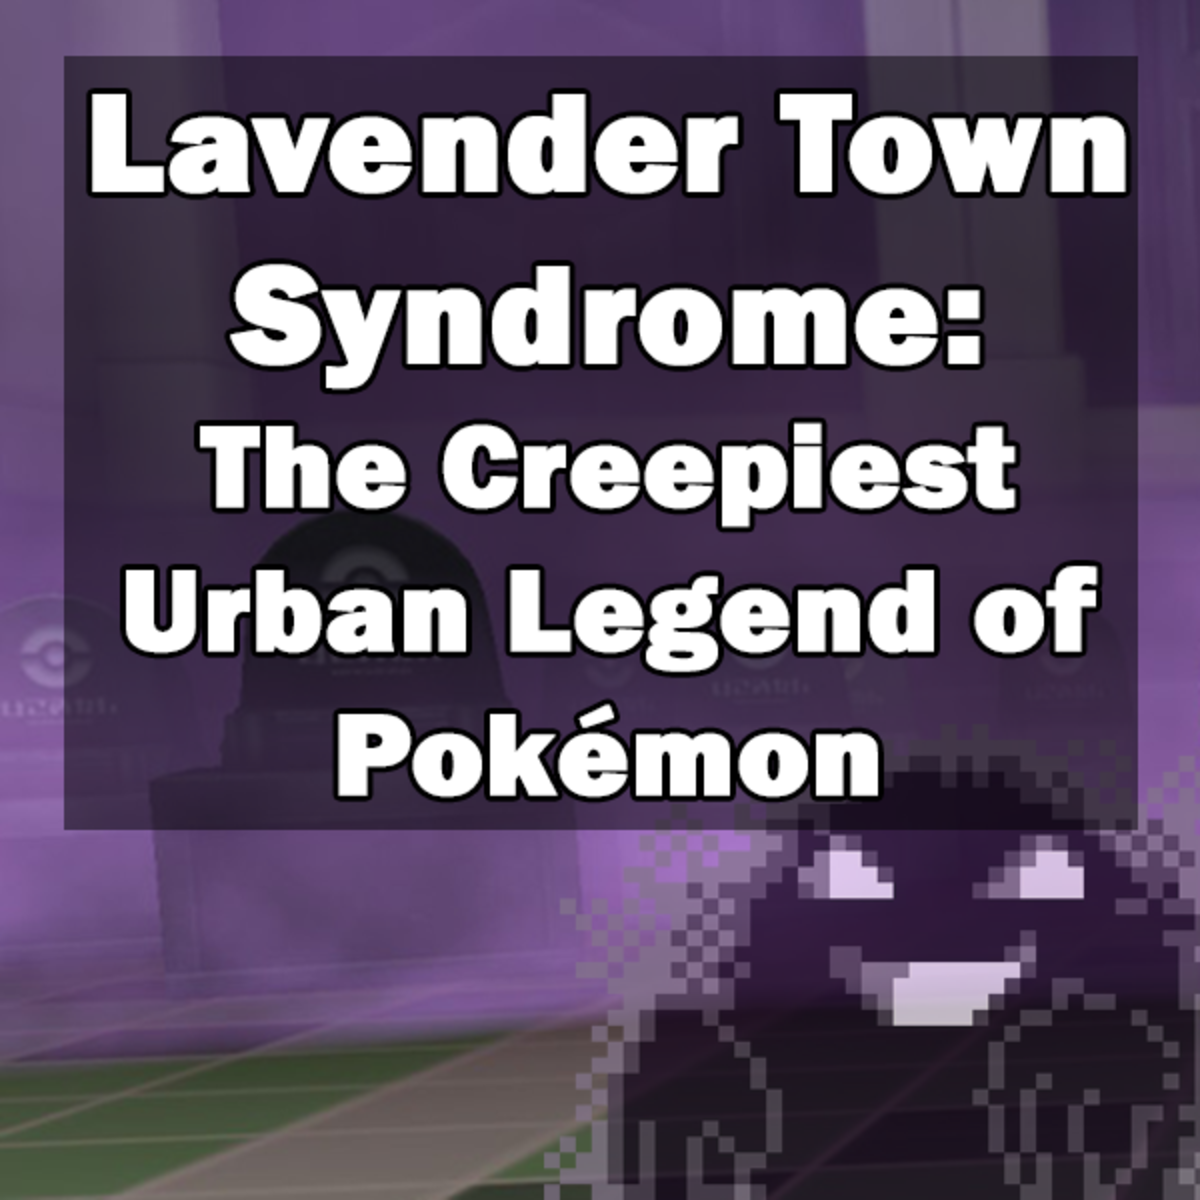 Lavender Town Syndrome: The Creepiest Urban Legend of Pokémon